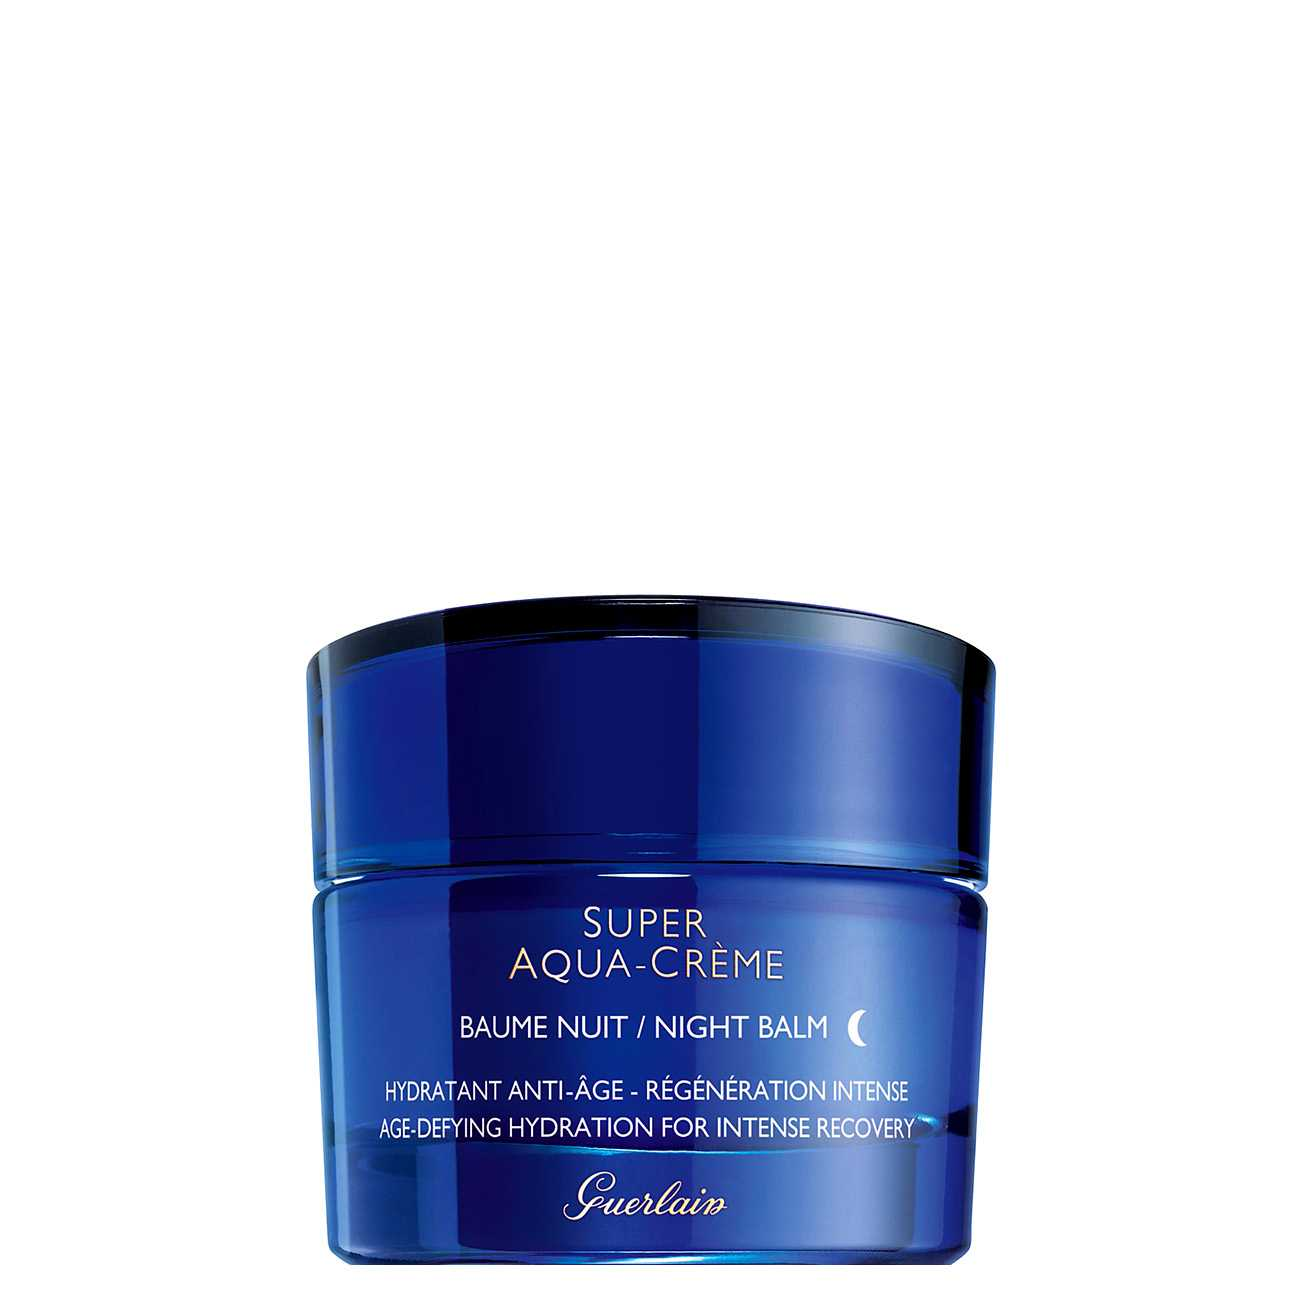 Super Aqua-Creme Night Balm 50 Ml Guerlain imagine 2021 bestvalue.eu